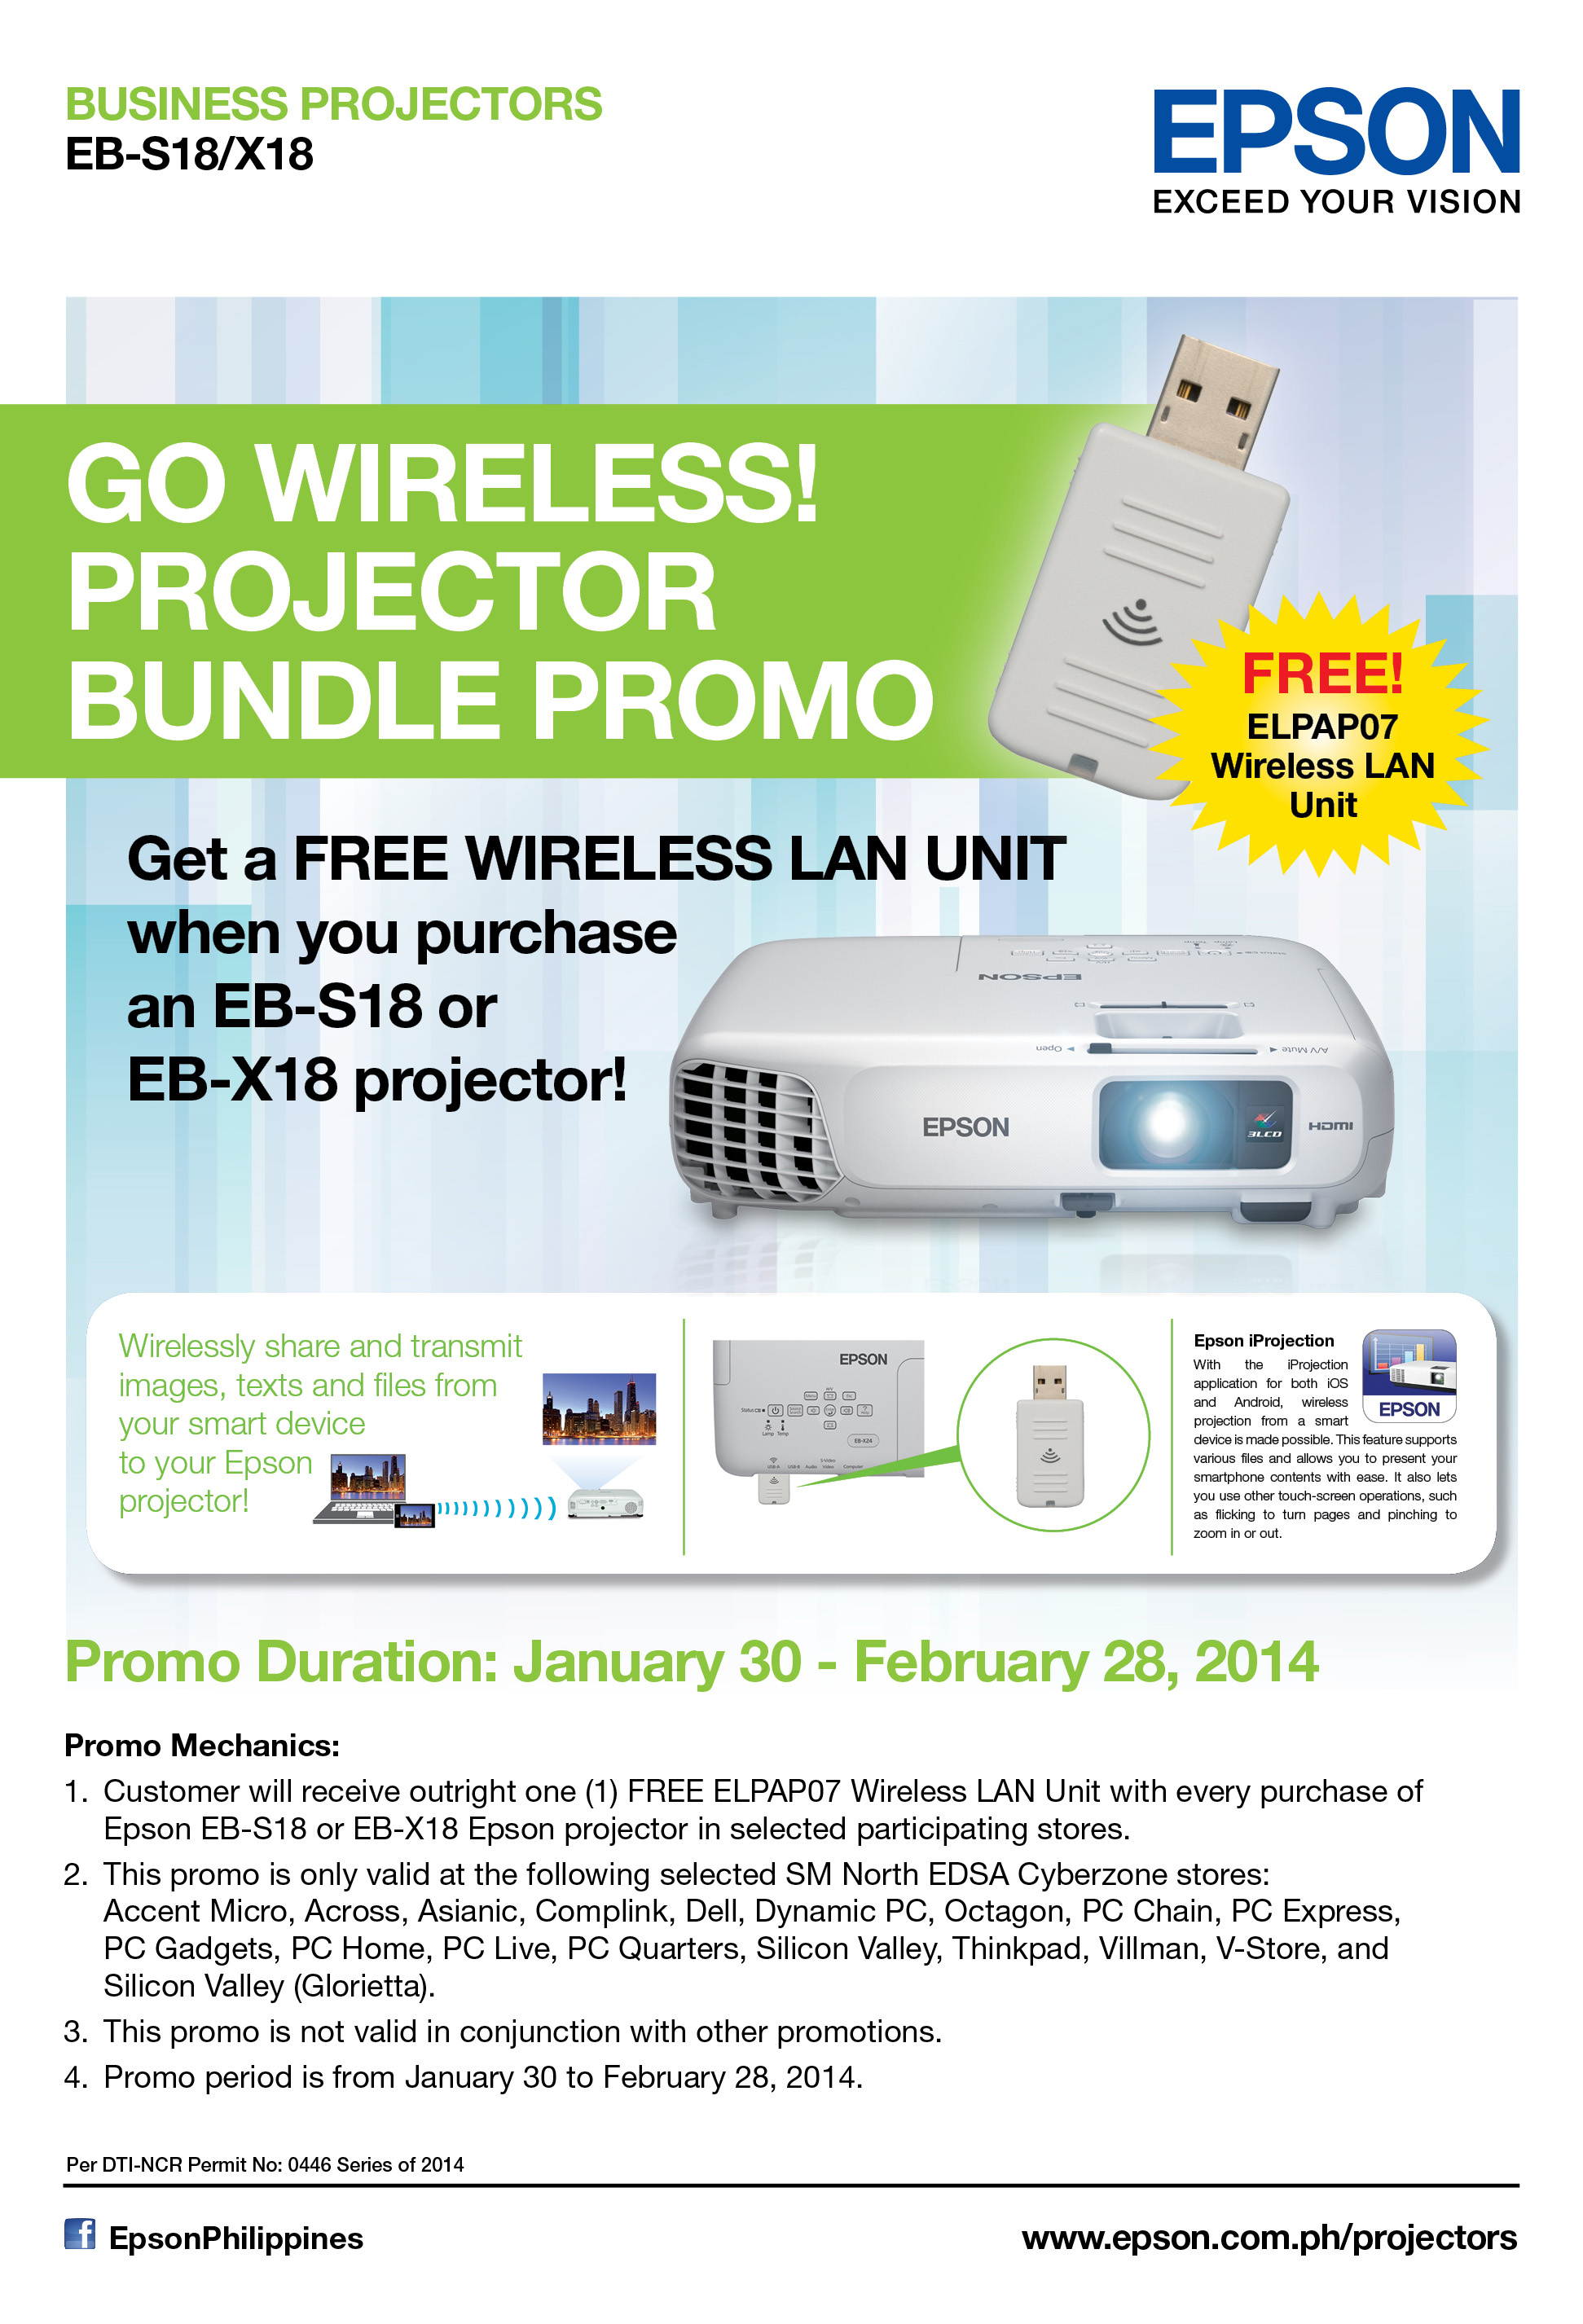 Buy an Epson projector and get a free wireless LAN unit - Upgrade